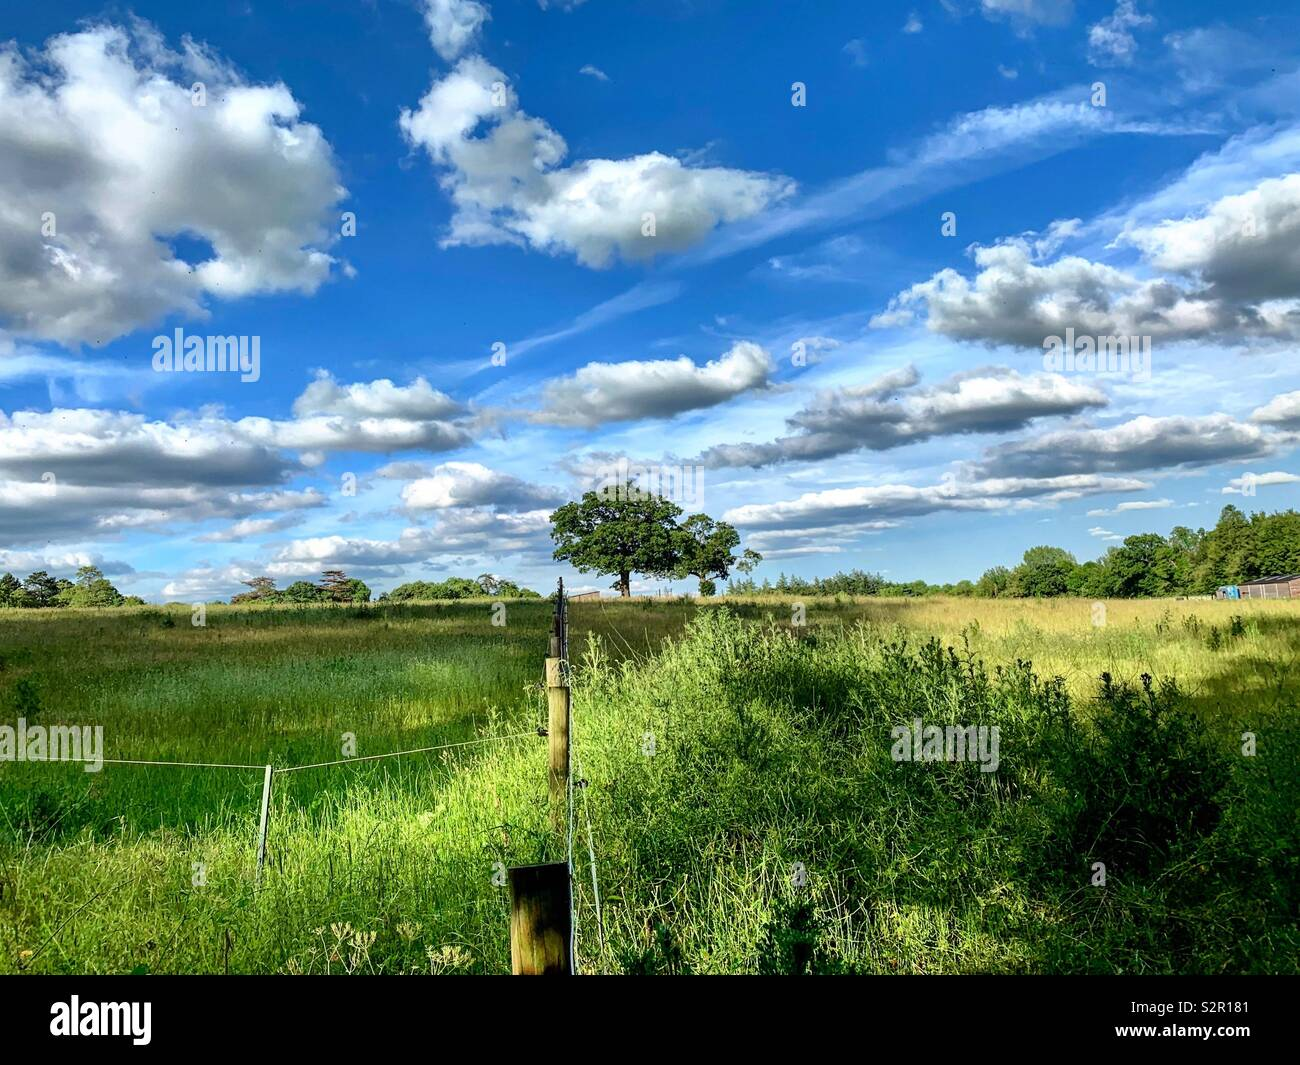 View from the lane - Stock Image